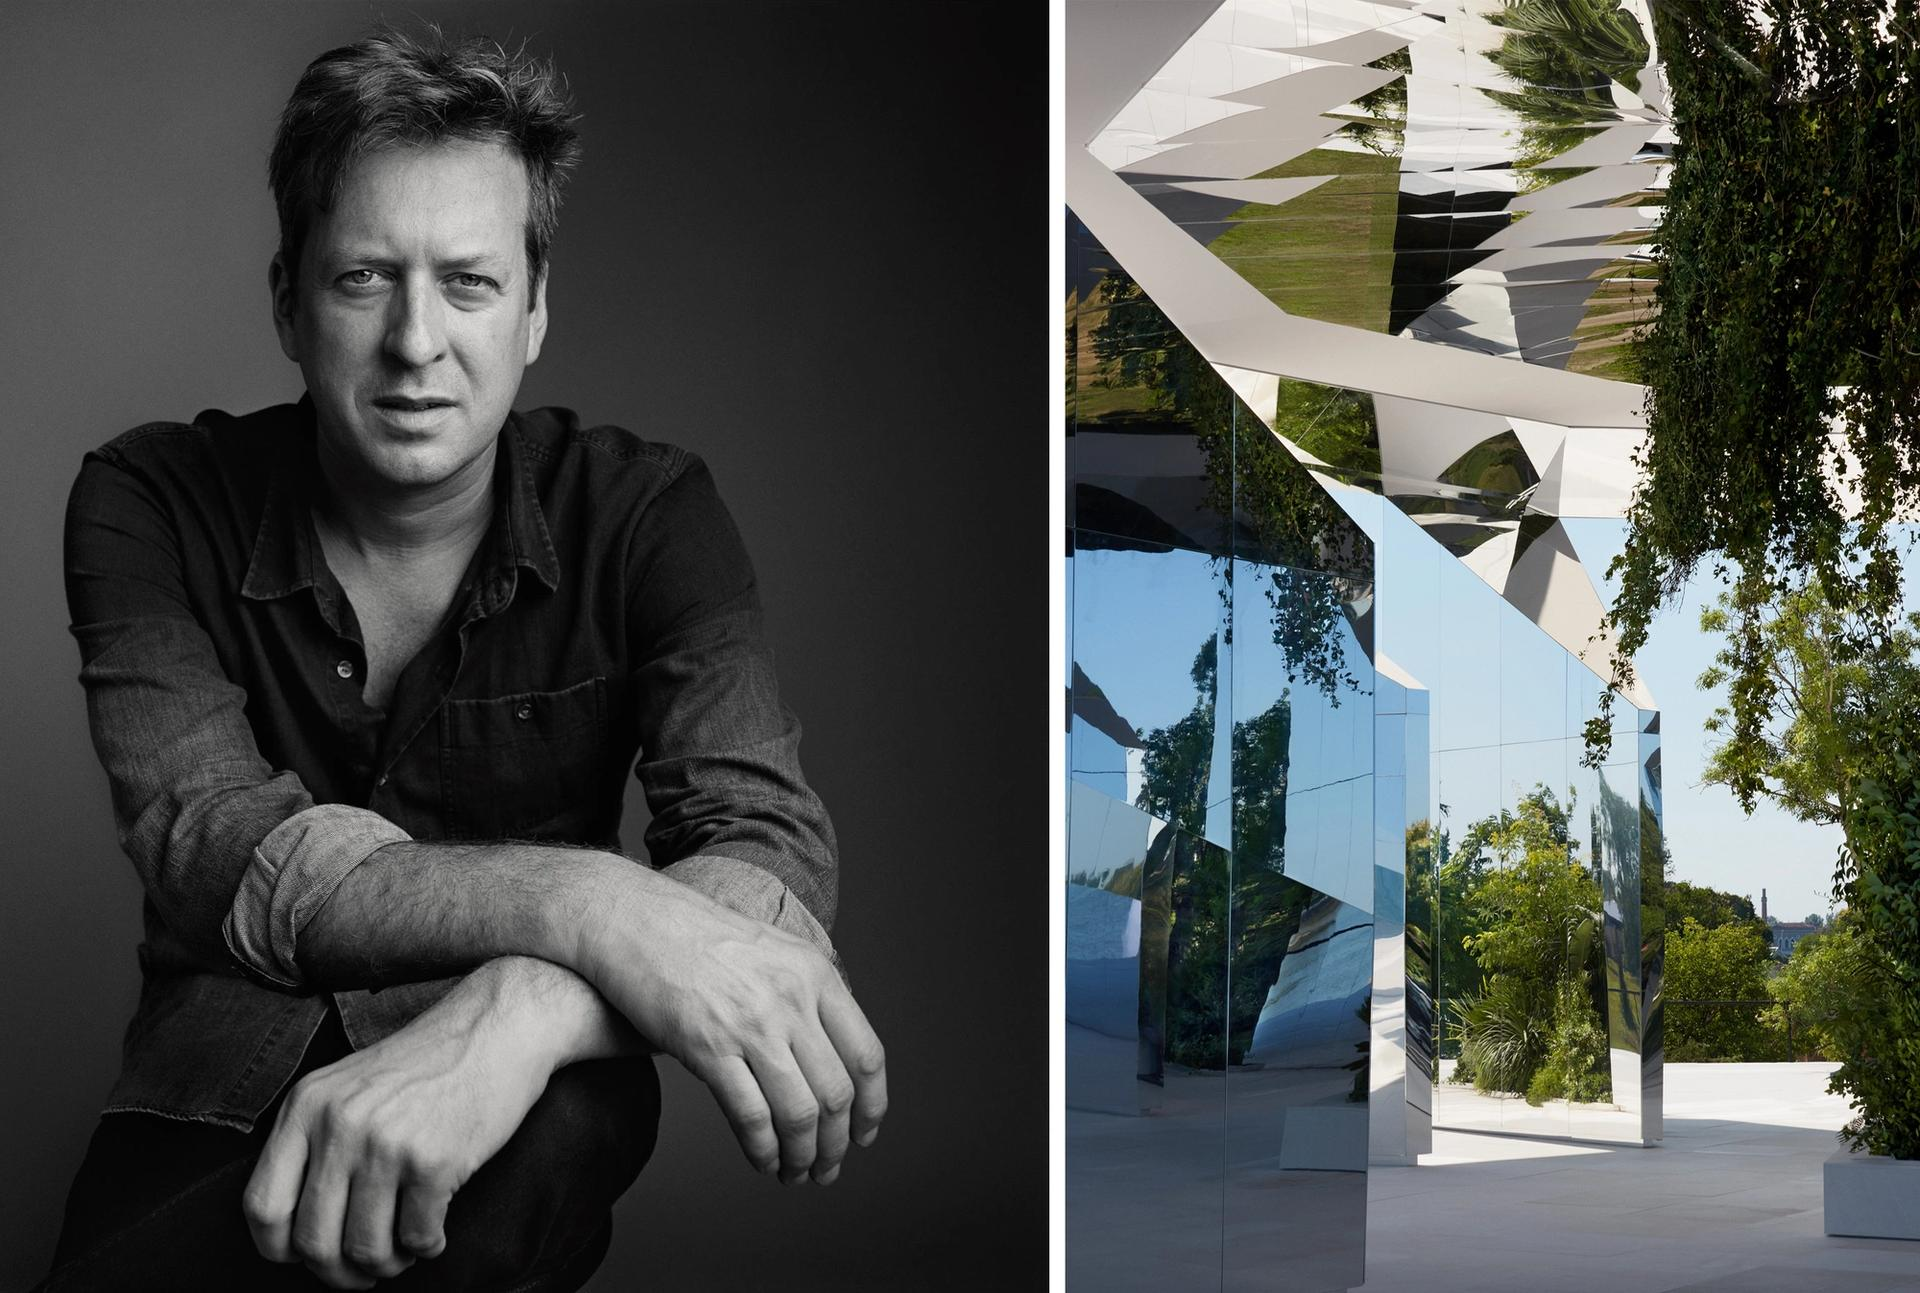 Doug Aitken created a mirrored pavilion on an island in Venice for Yves Saint Laurent's Spring/Summer 2022 show Courtesy of YSL